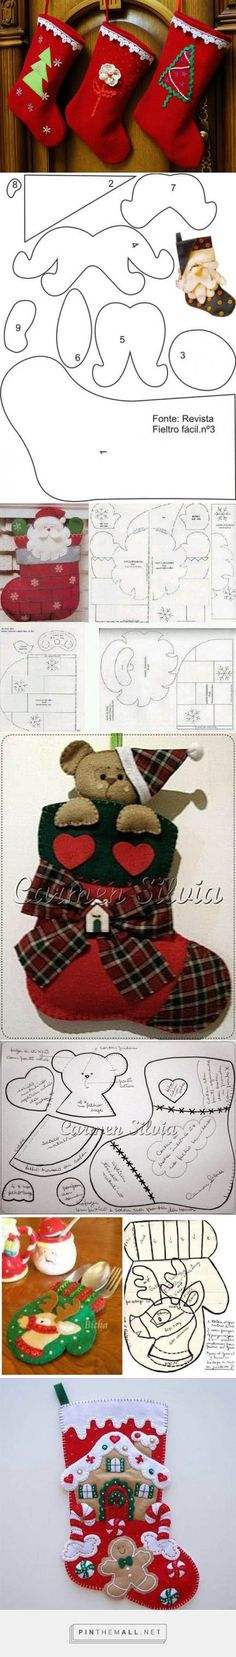 Christmas Crafts For Gifts, Christmas Ornament Crafts, Christmas Sewing, Christmas Art, Christmas Projects, Christmas Stockings, Christmas Wreaths, Christmas Decorations, Christmas Templates